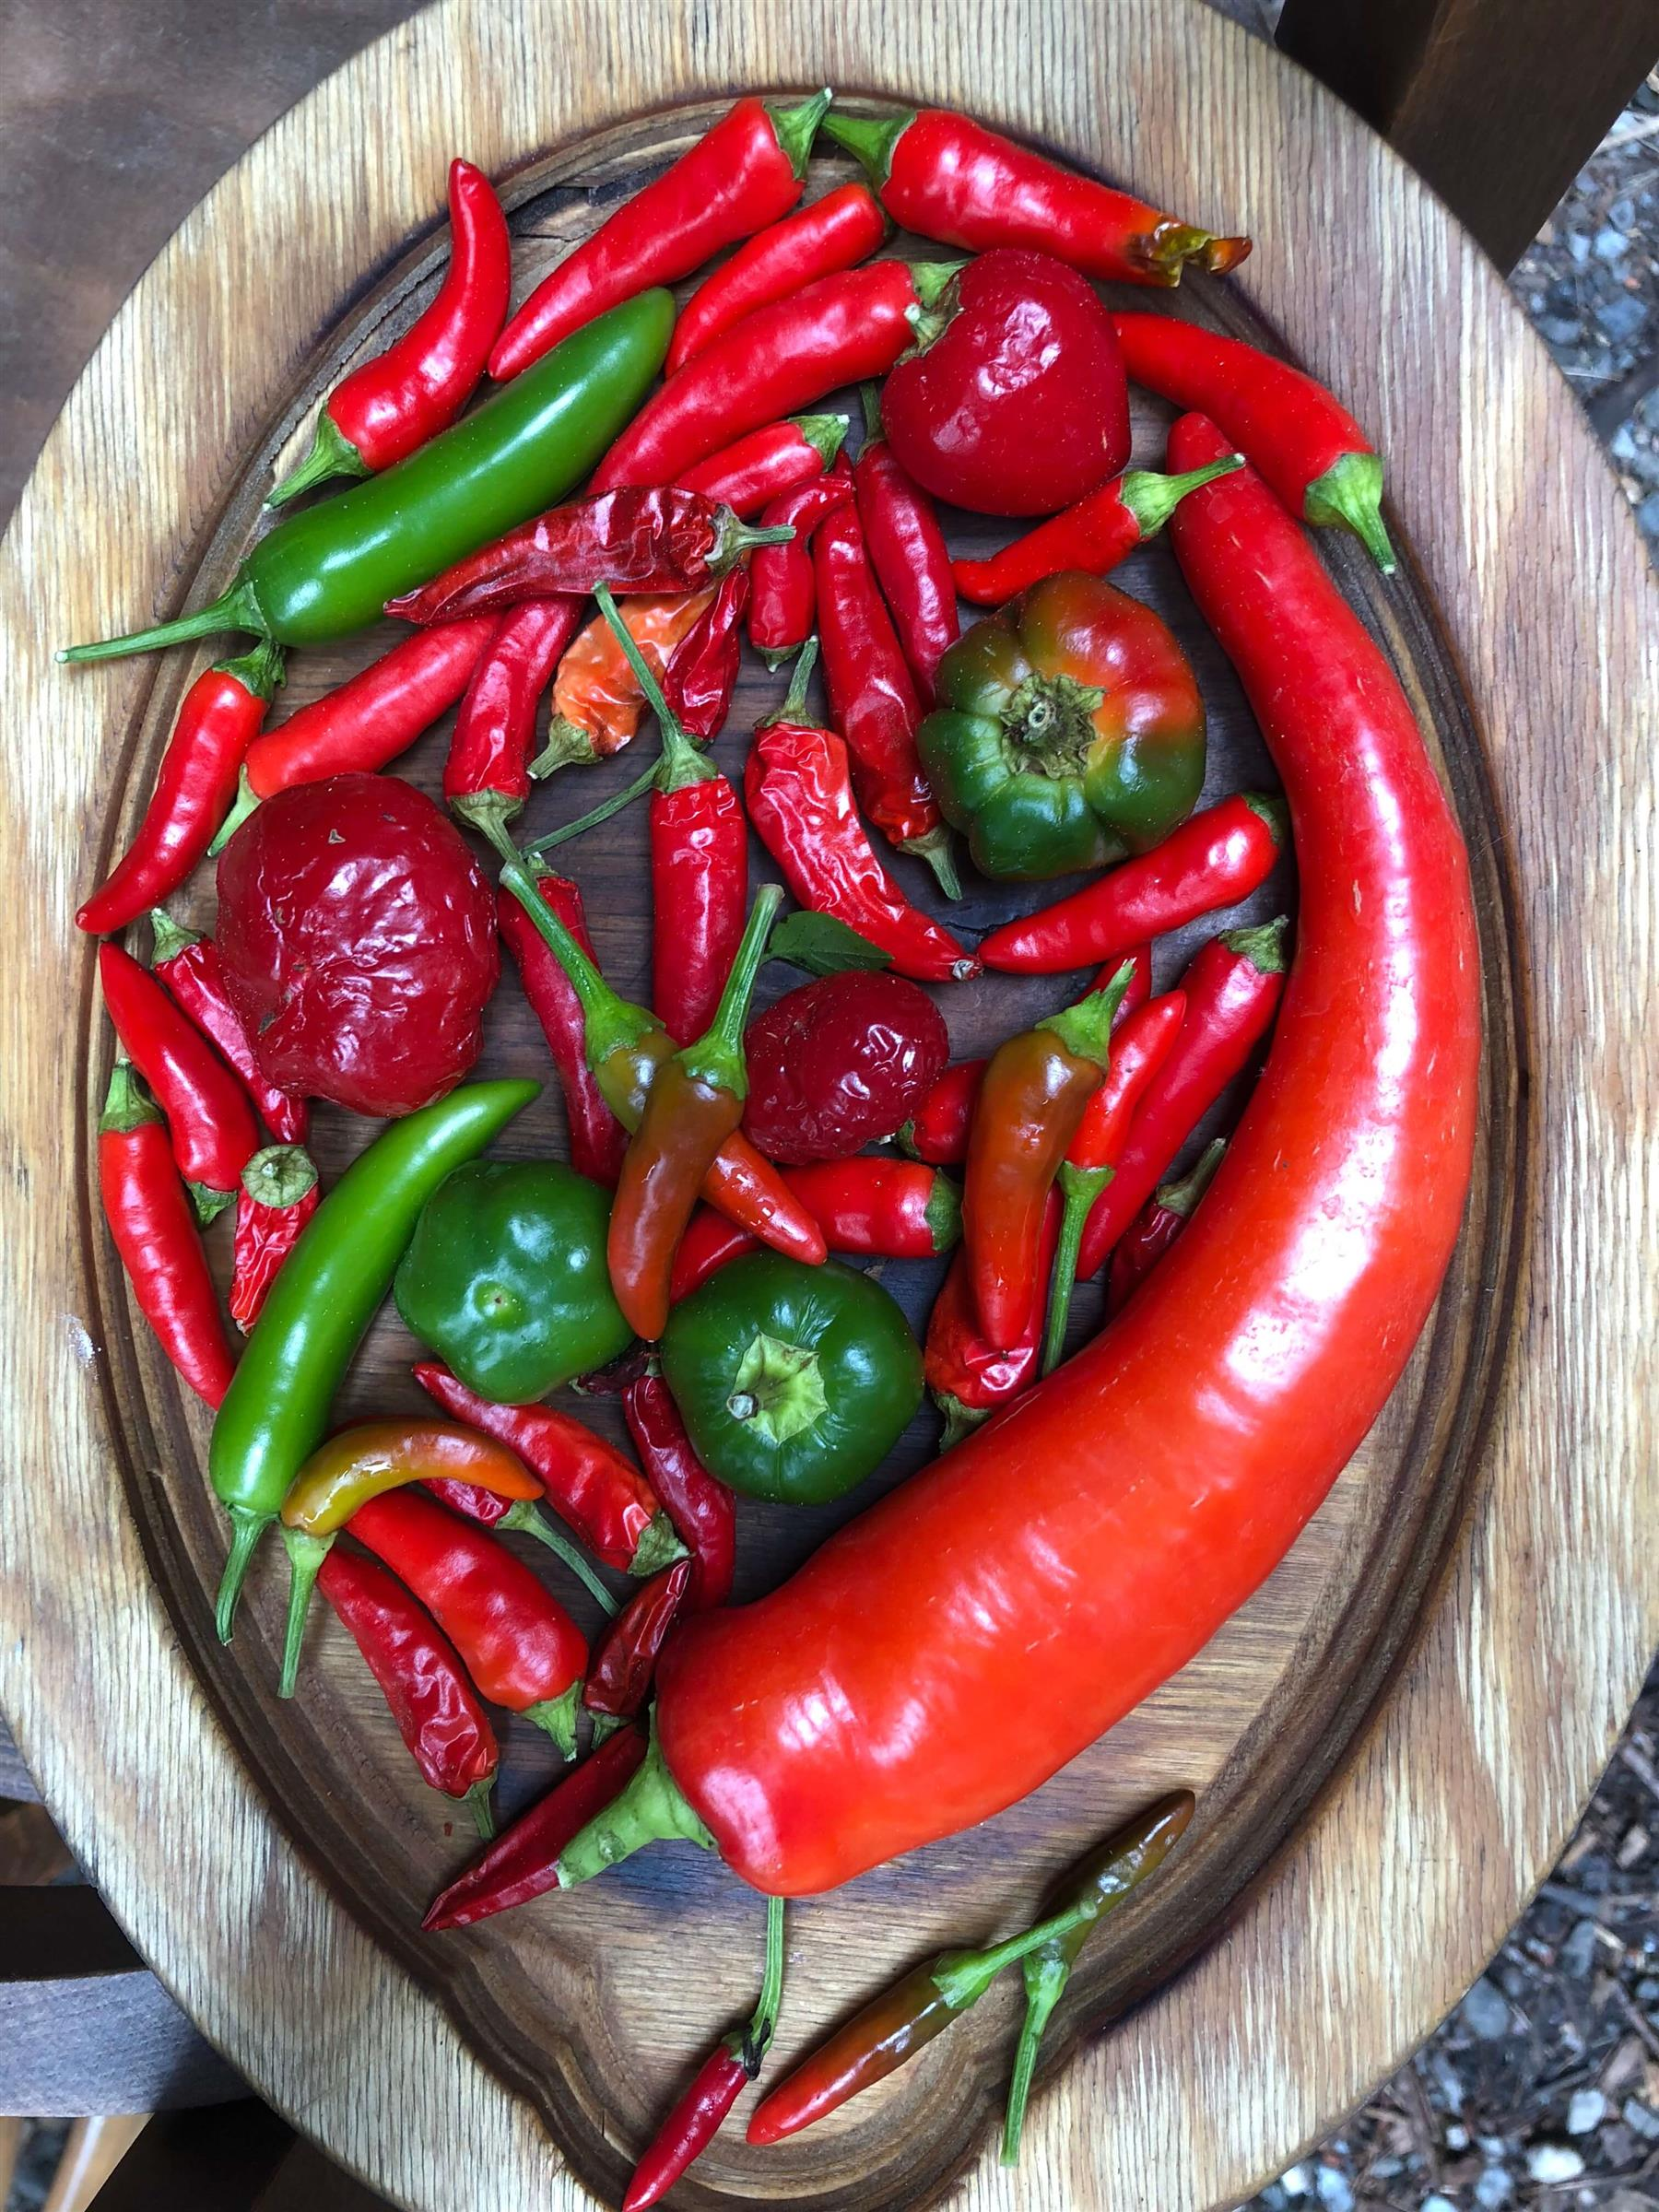 jalapeño peppers on a wooden tray